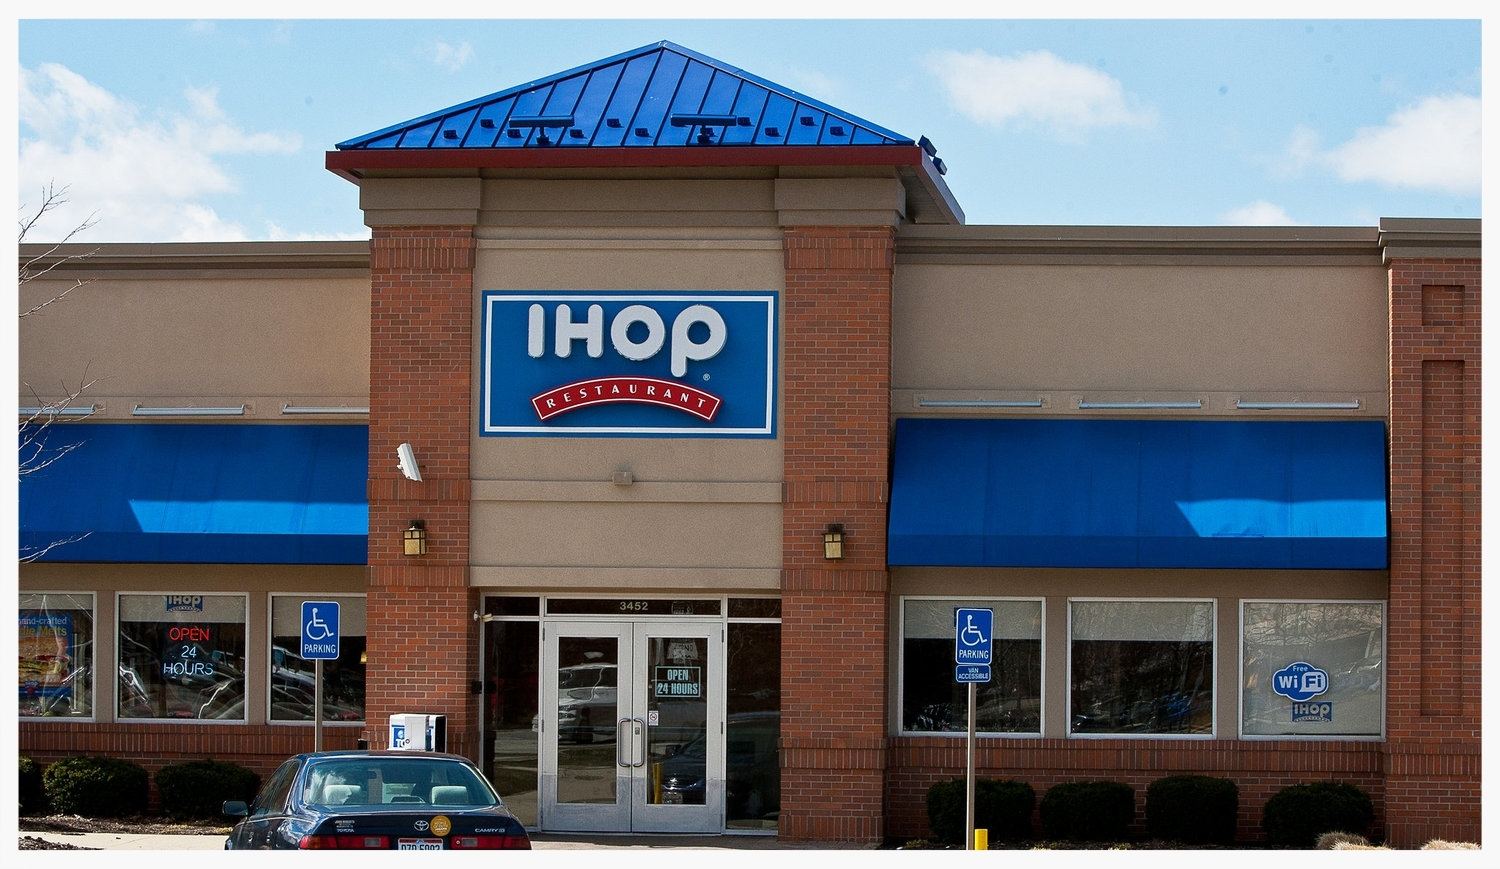 Expansion, Lease up and development of multiple IHOP locations